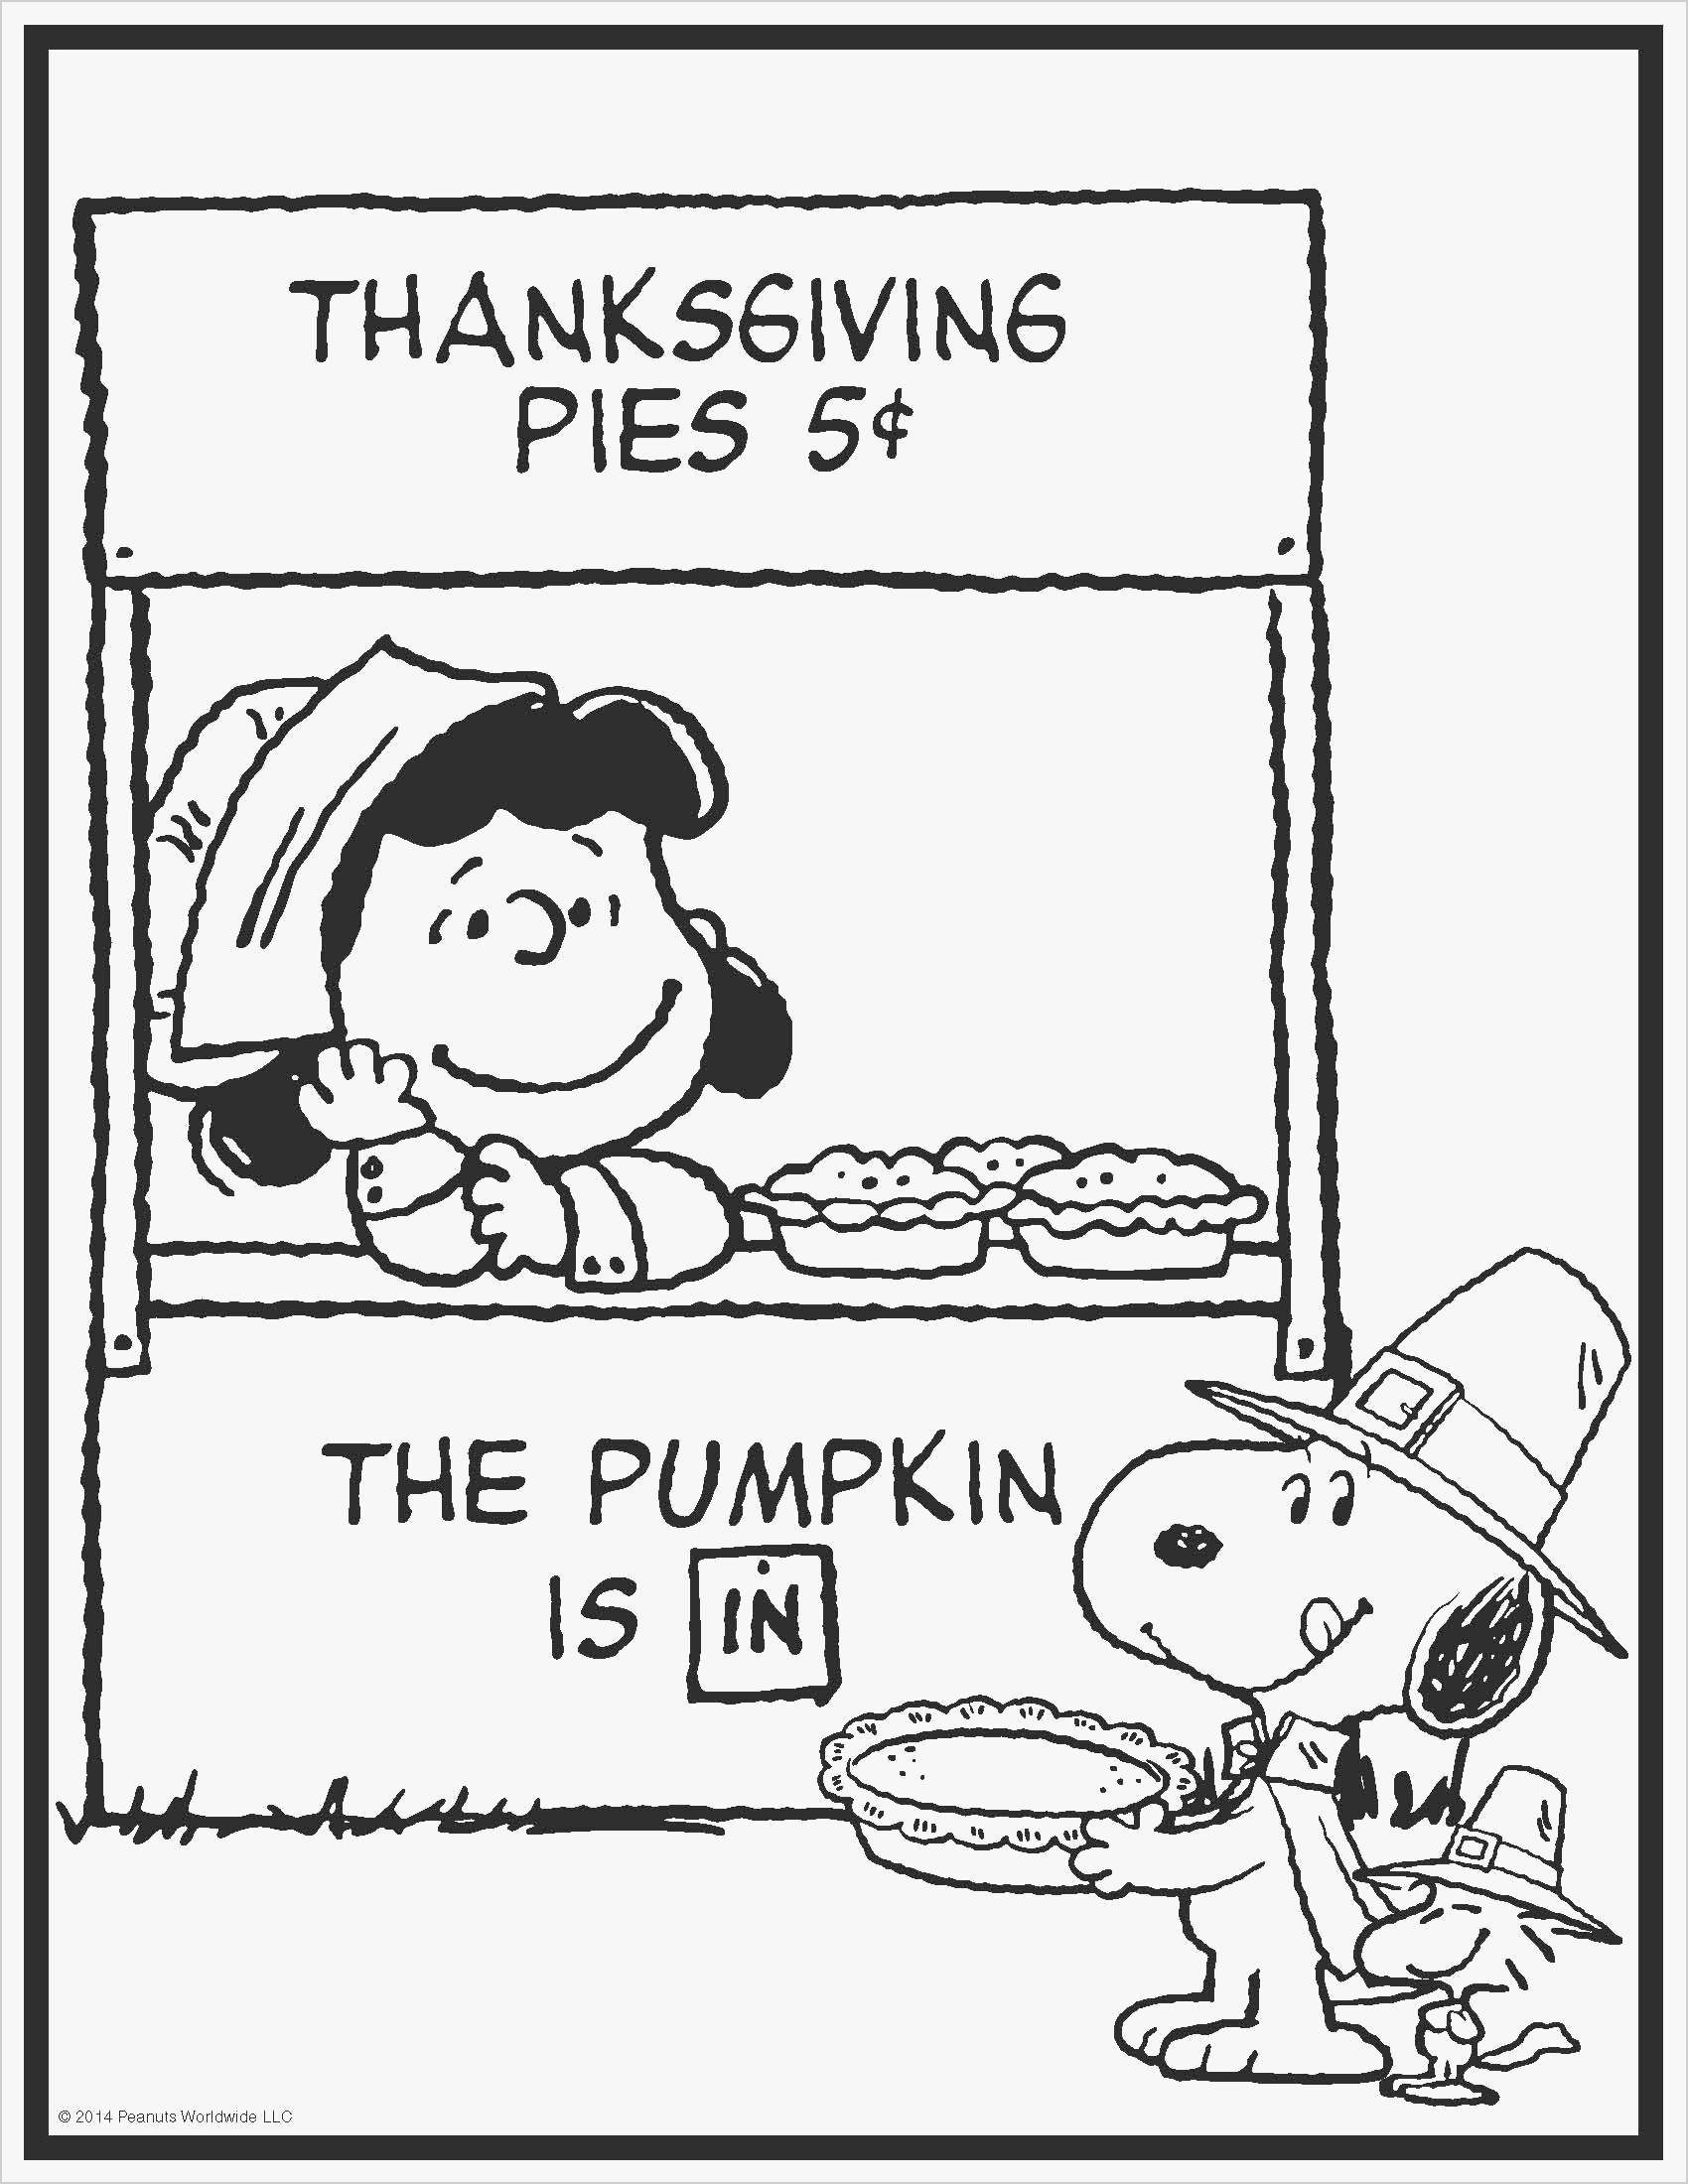 25 Best Image Of Peanuts Coloring Pages Davemelillo Com Snoopy Coloring Pages Thanksgiving Coloring Pages Coloring Pages Inspirational